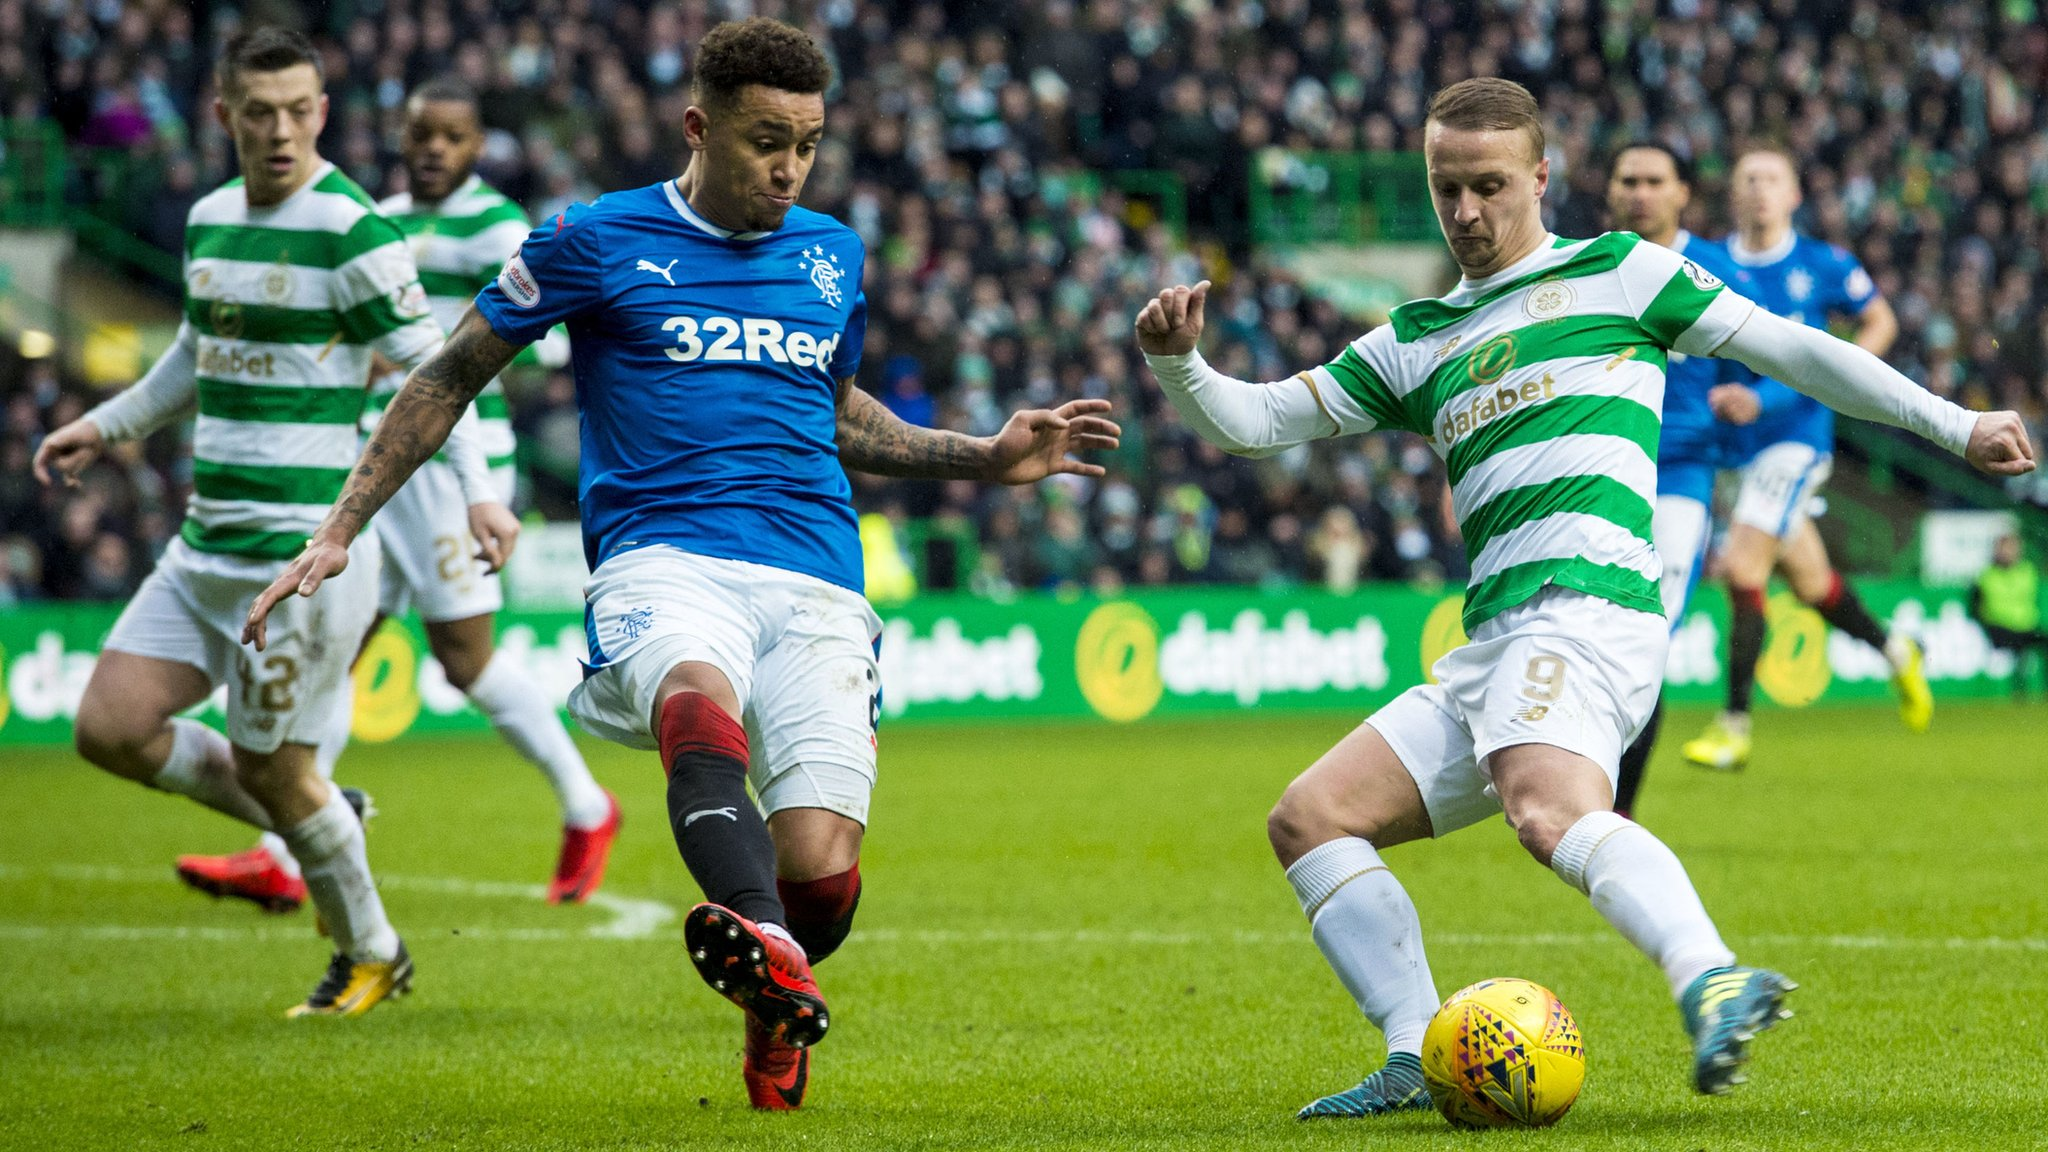 Old Firm title decider should be avoided, says ex-police body chairman